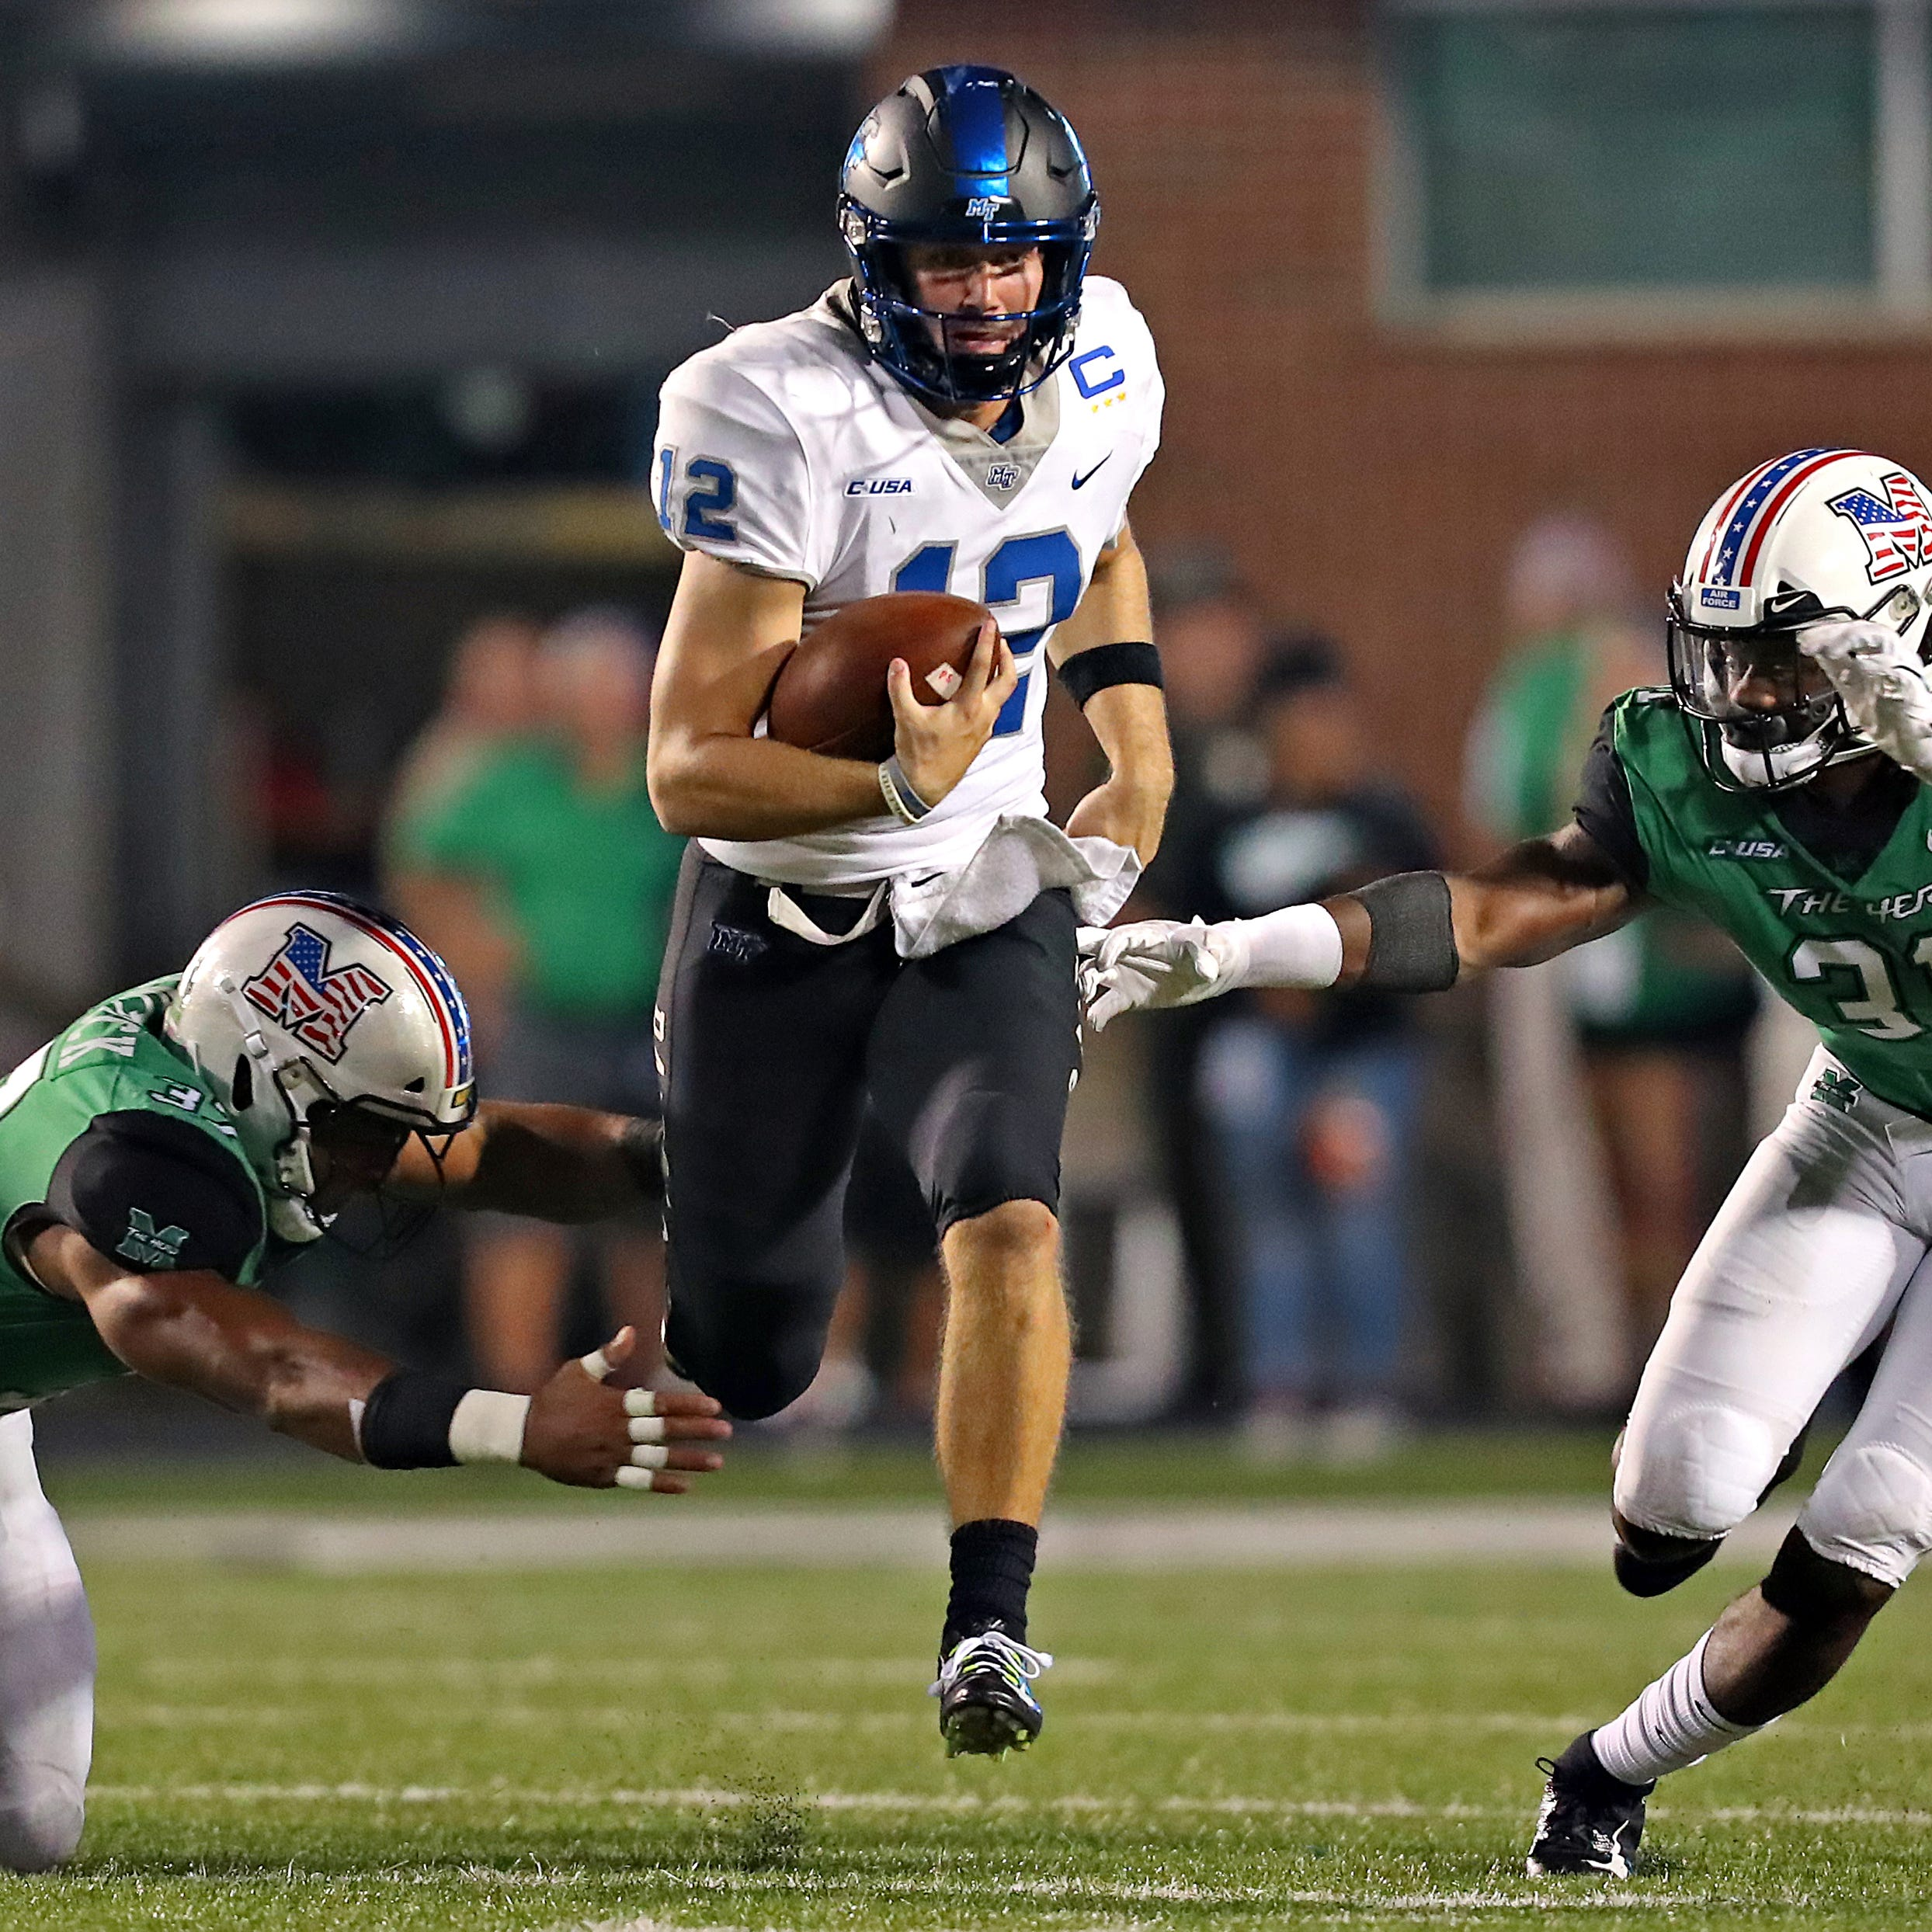 MTSU quarterback Brent Stockstill exits game against Florida International in second quarter